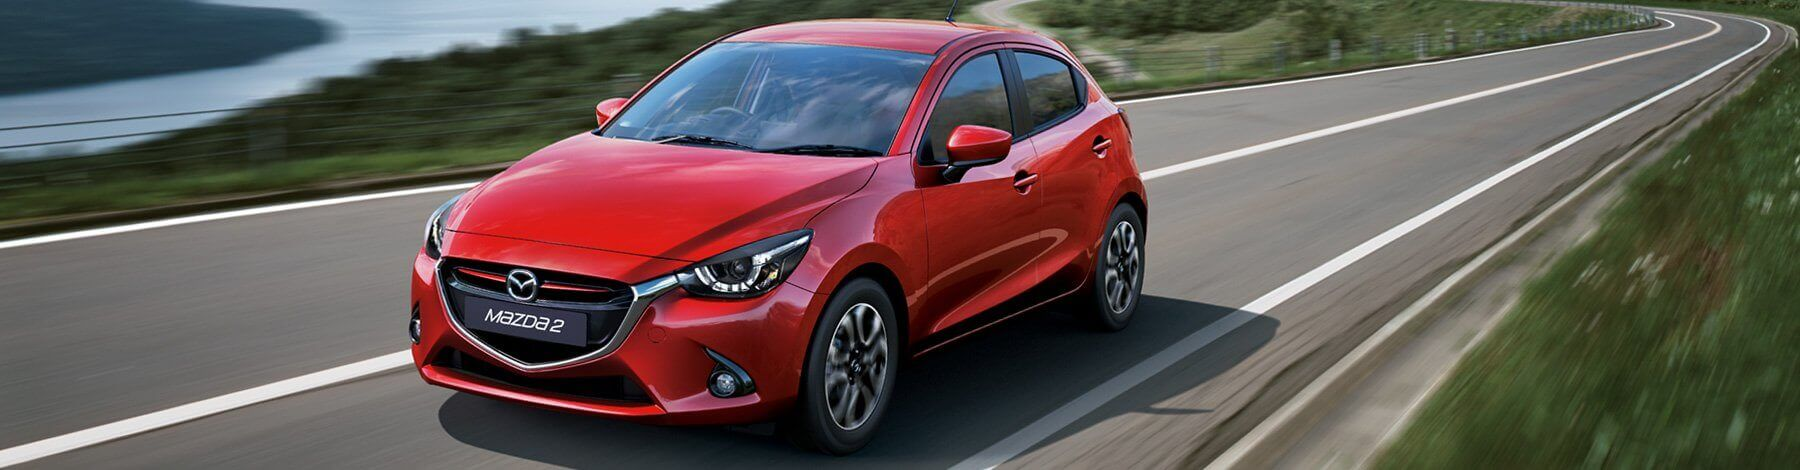 Maitland Mazda is your local Mazda dealer, offering great driveaway